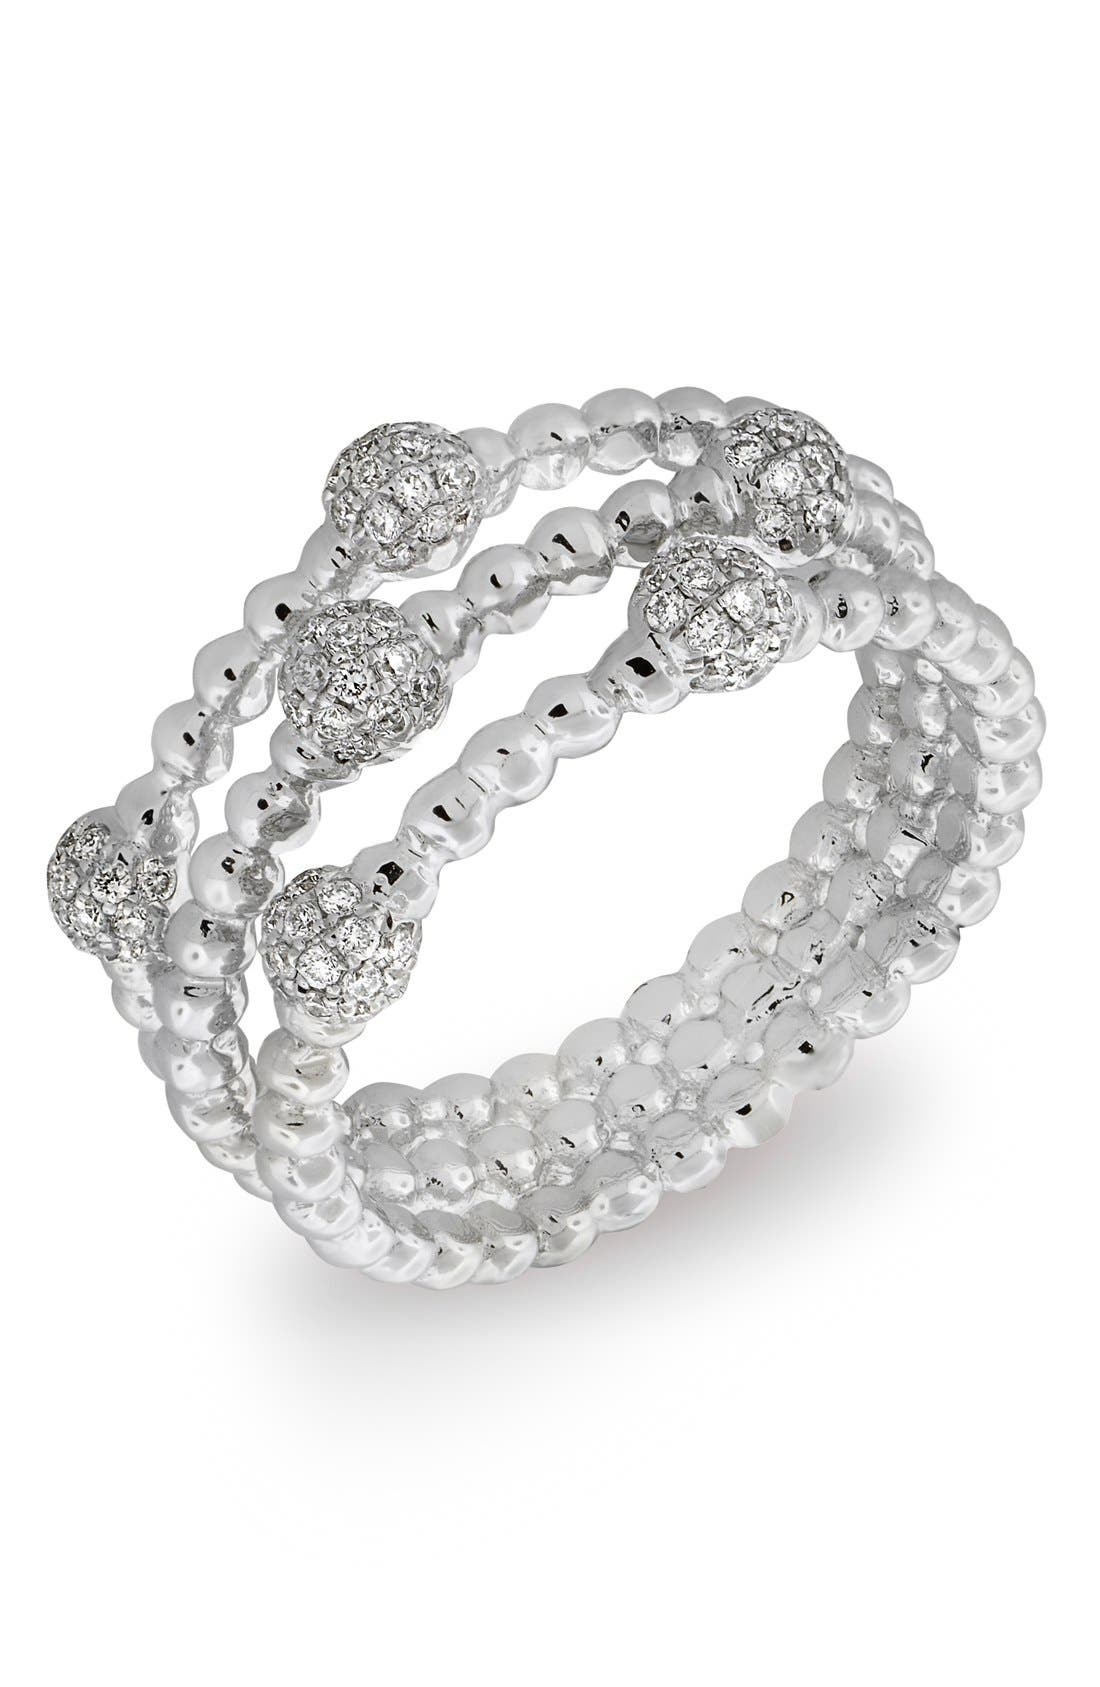 Main Image - Bony Levy Pavé Ball Bead Three-Row Diamond Ring (Nordstrom Exclusive)